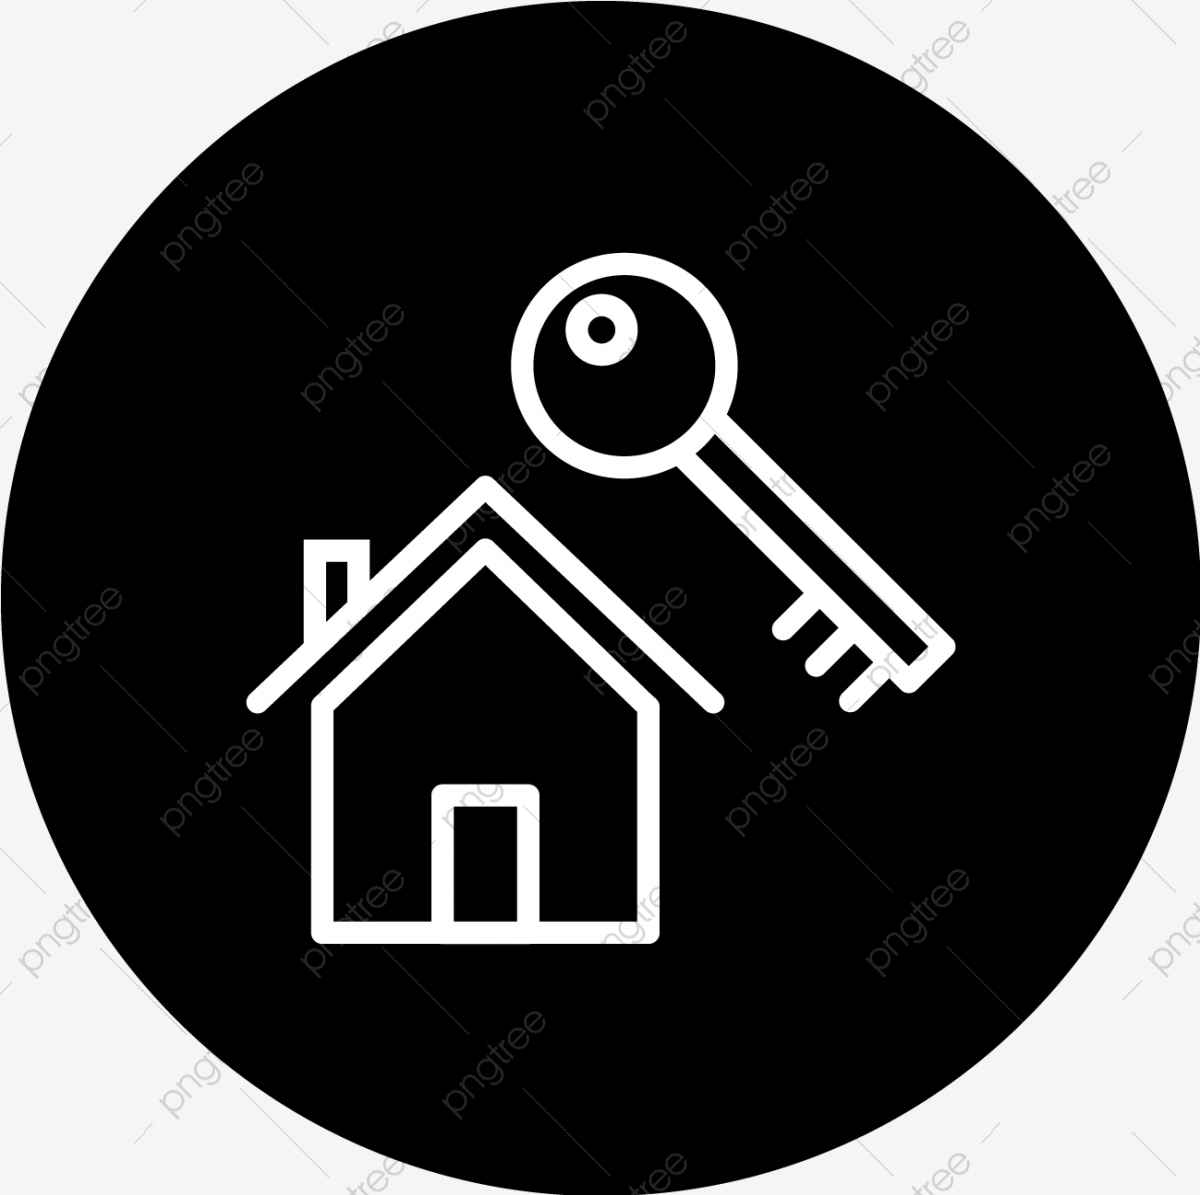 House Key Png Vector Psd And Clipart With Transparent Background For Free Download Pngtree